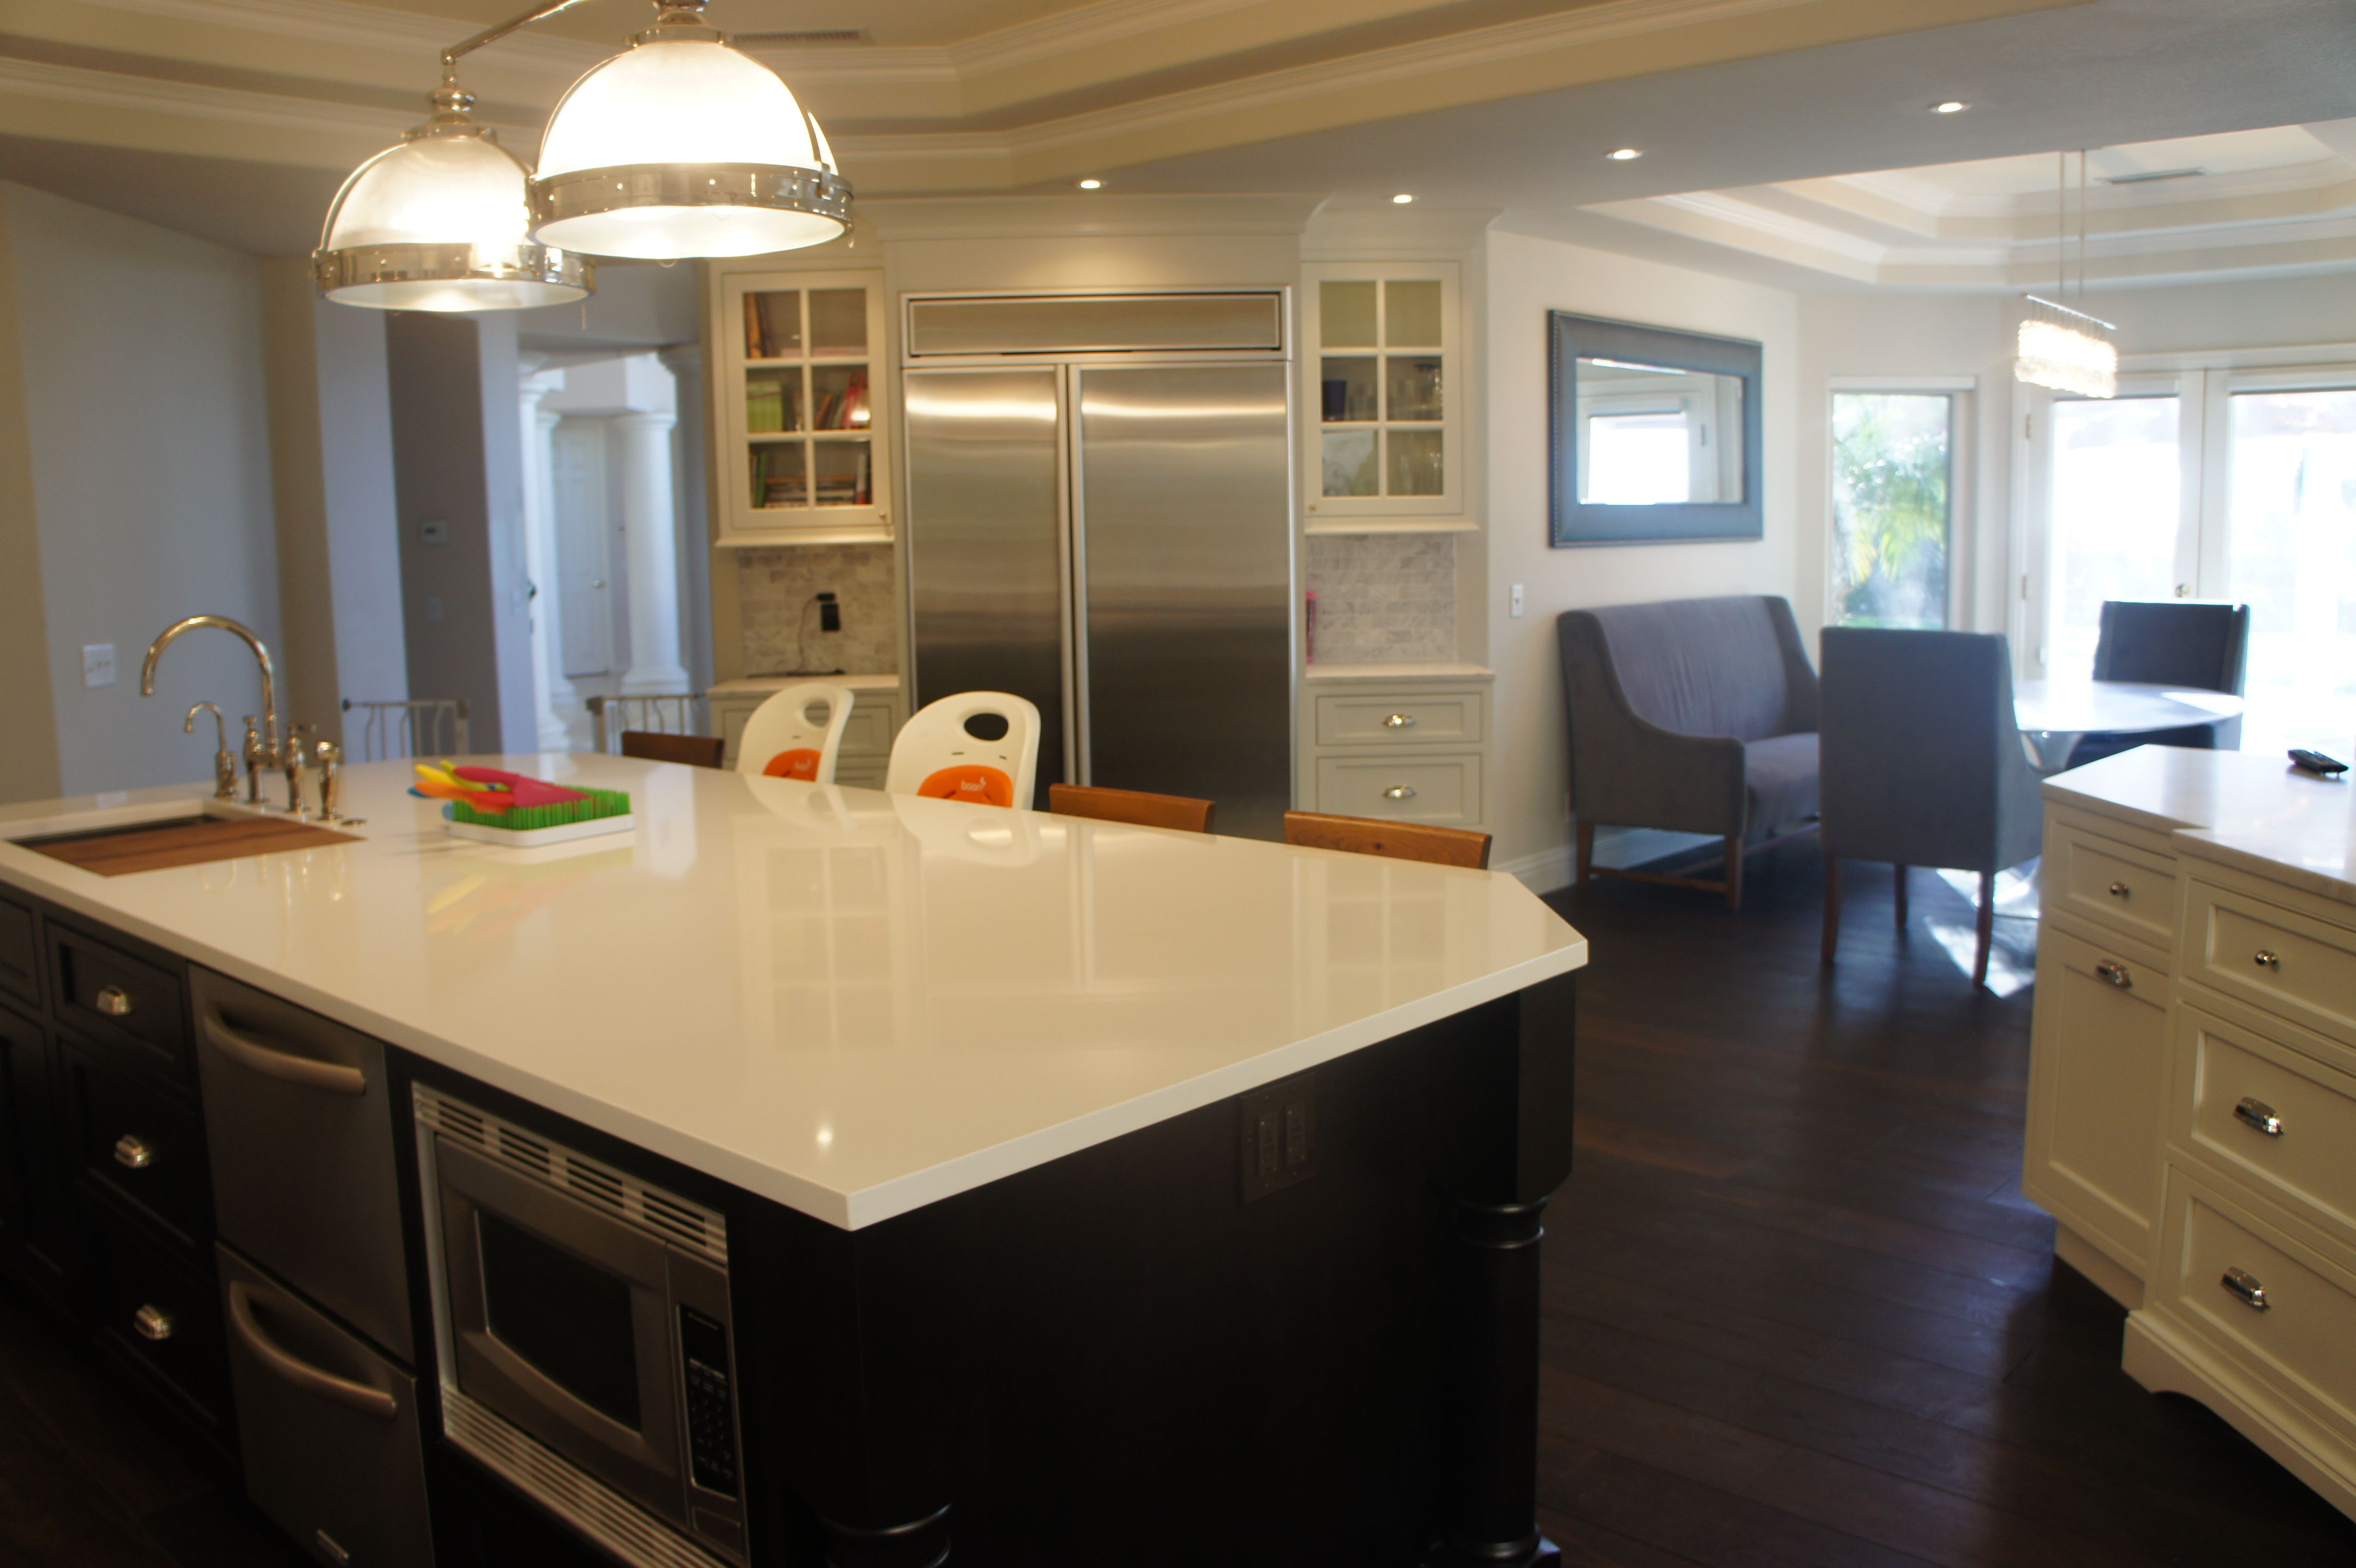 Shiloh Beaded Inset Cabinetry In Riverside California Inset Cabinetry Traditional Kitchen Cabinets Kitchen Design